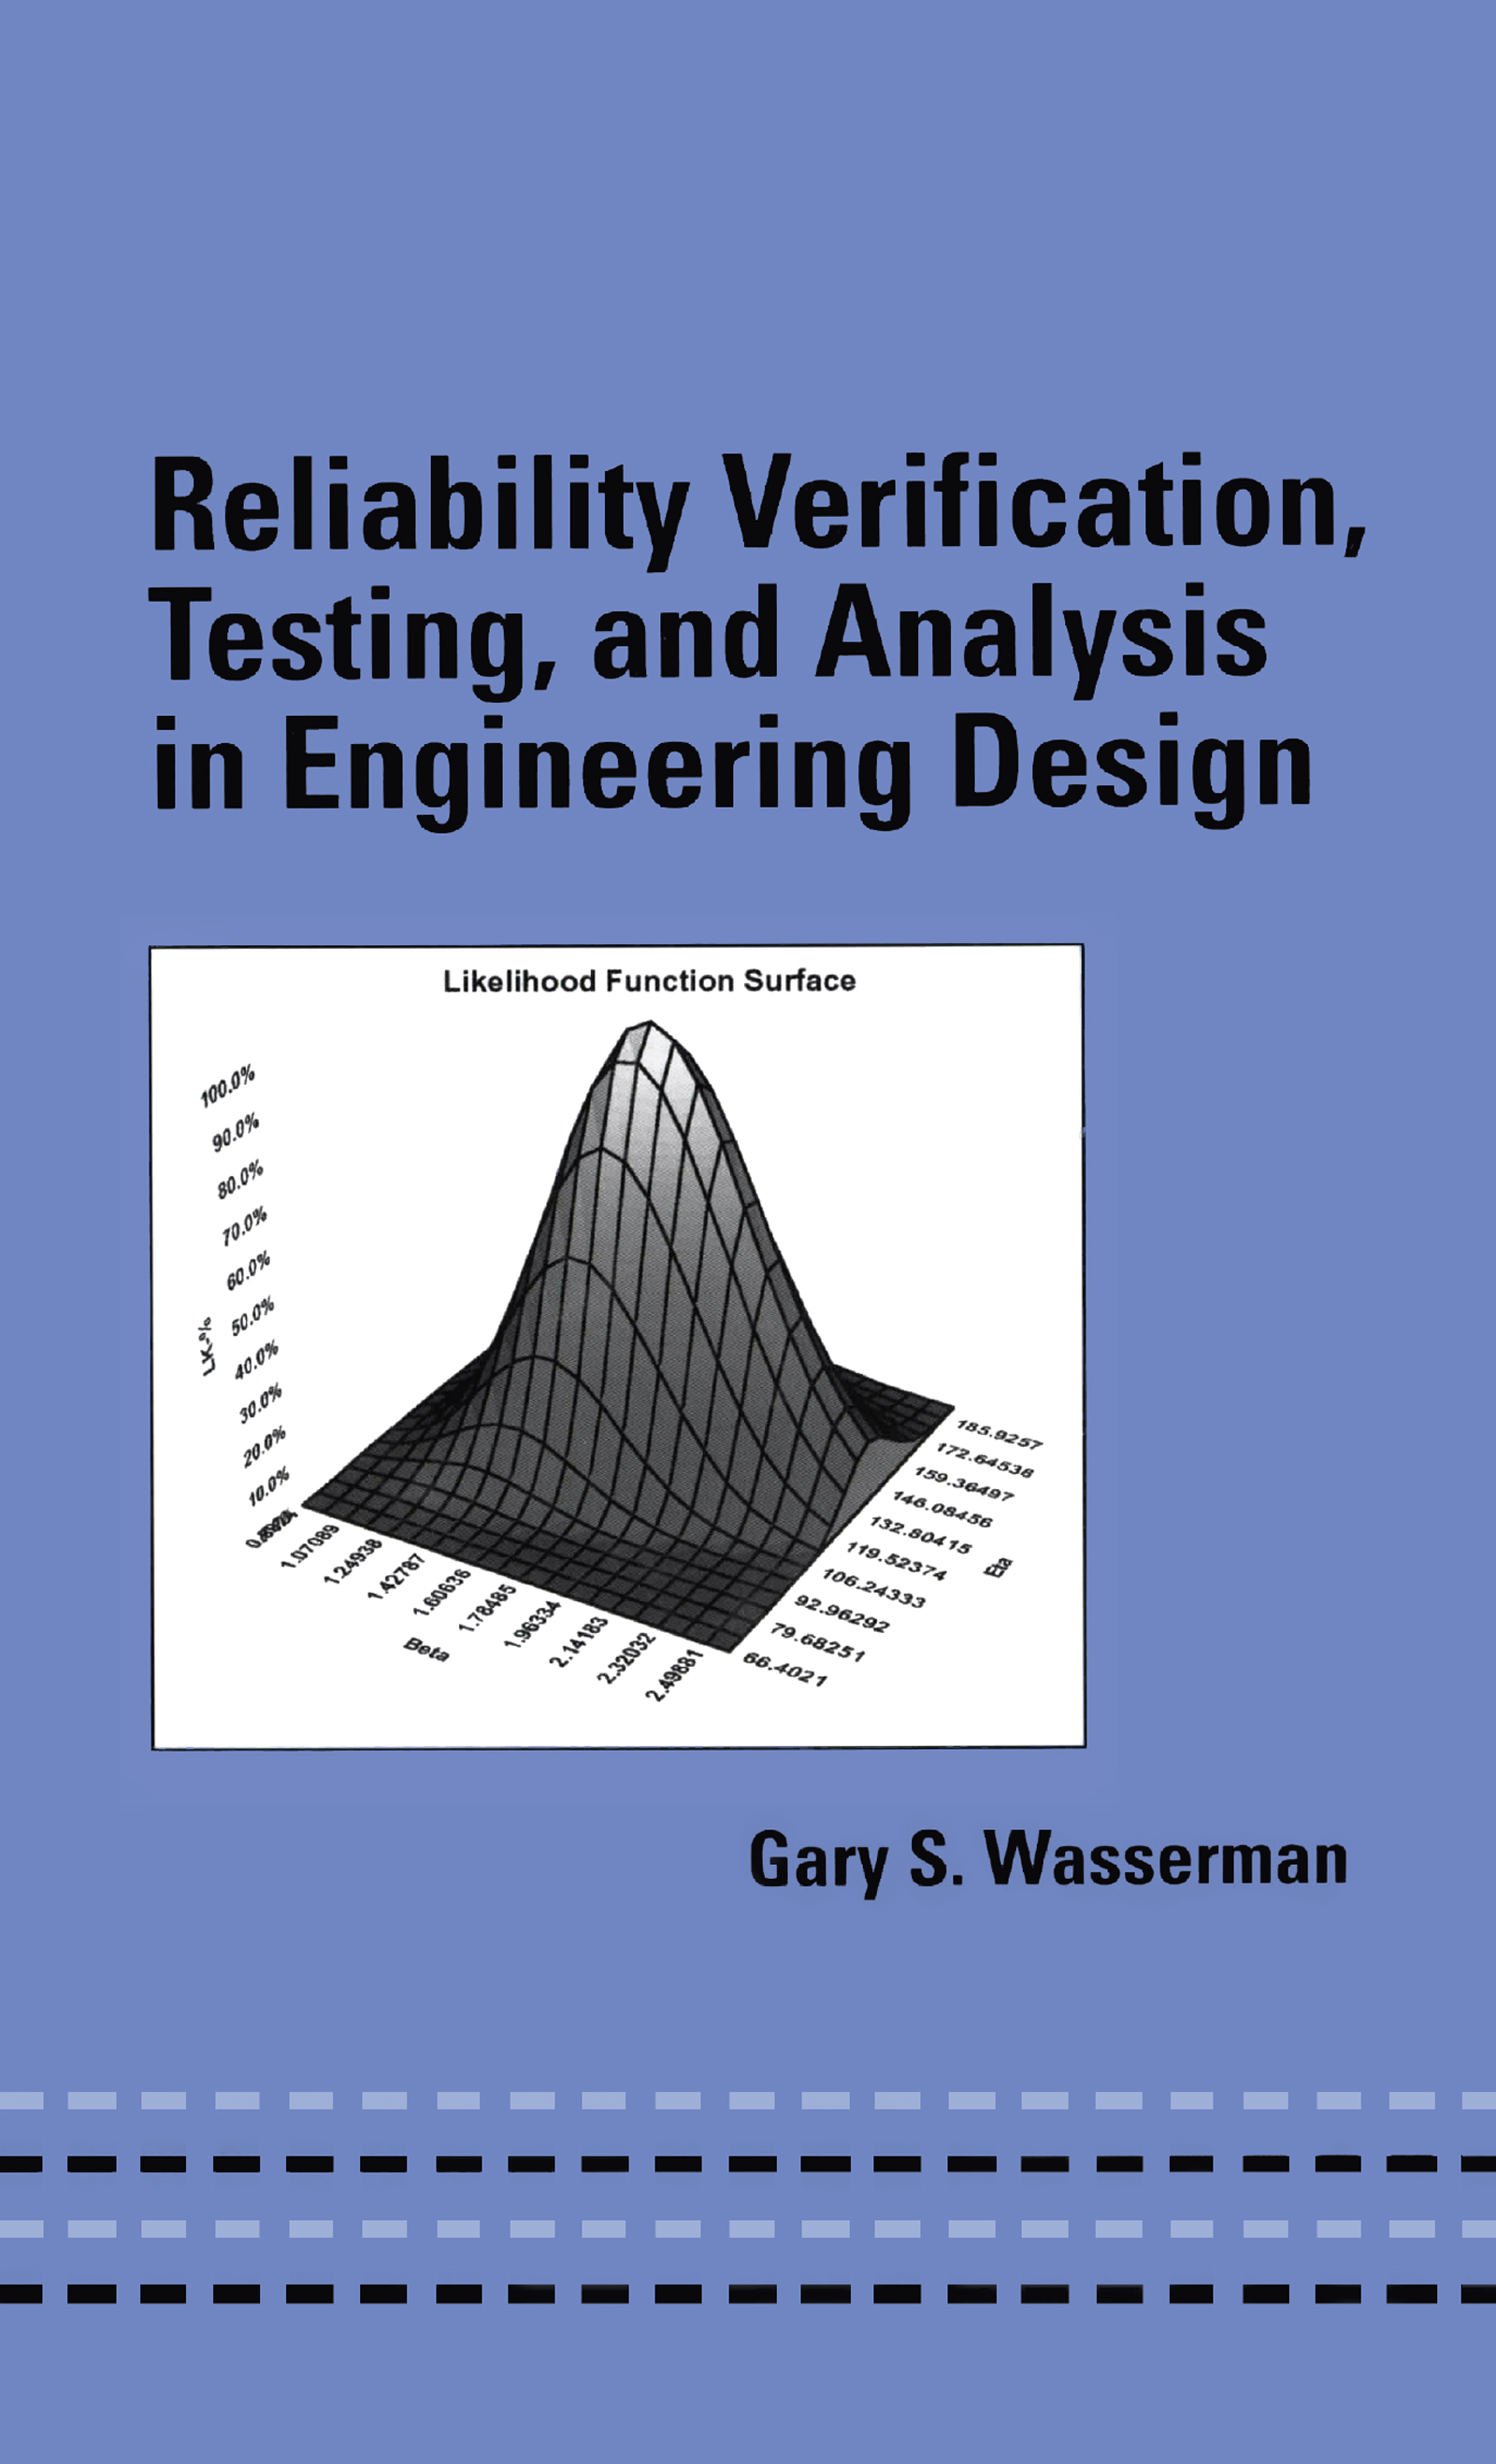 Reliability Verification, Testing, and Analysis in Engineering Design